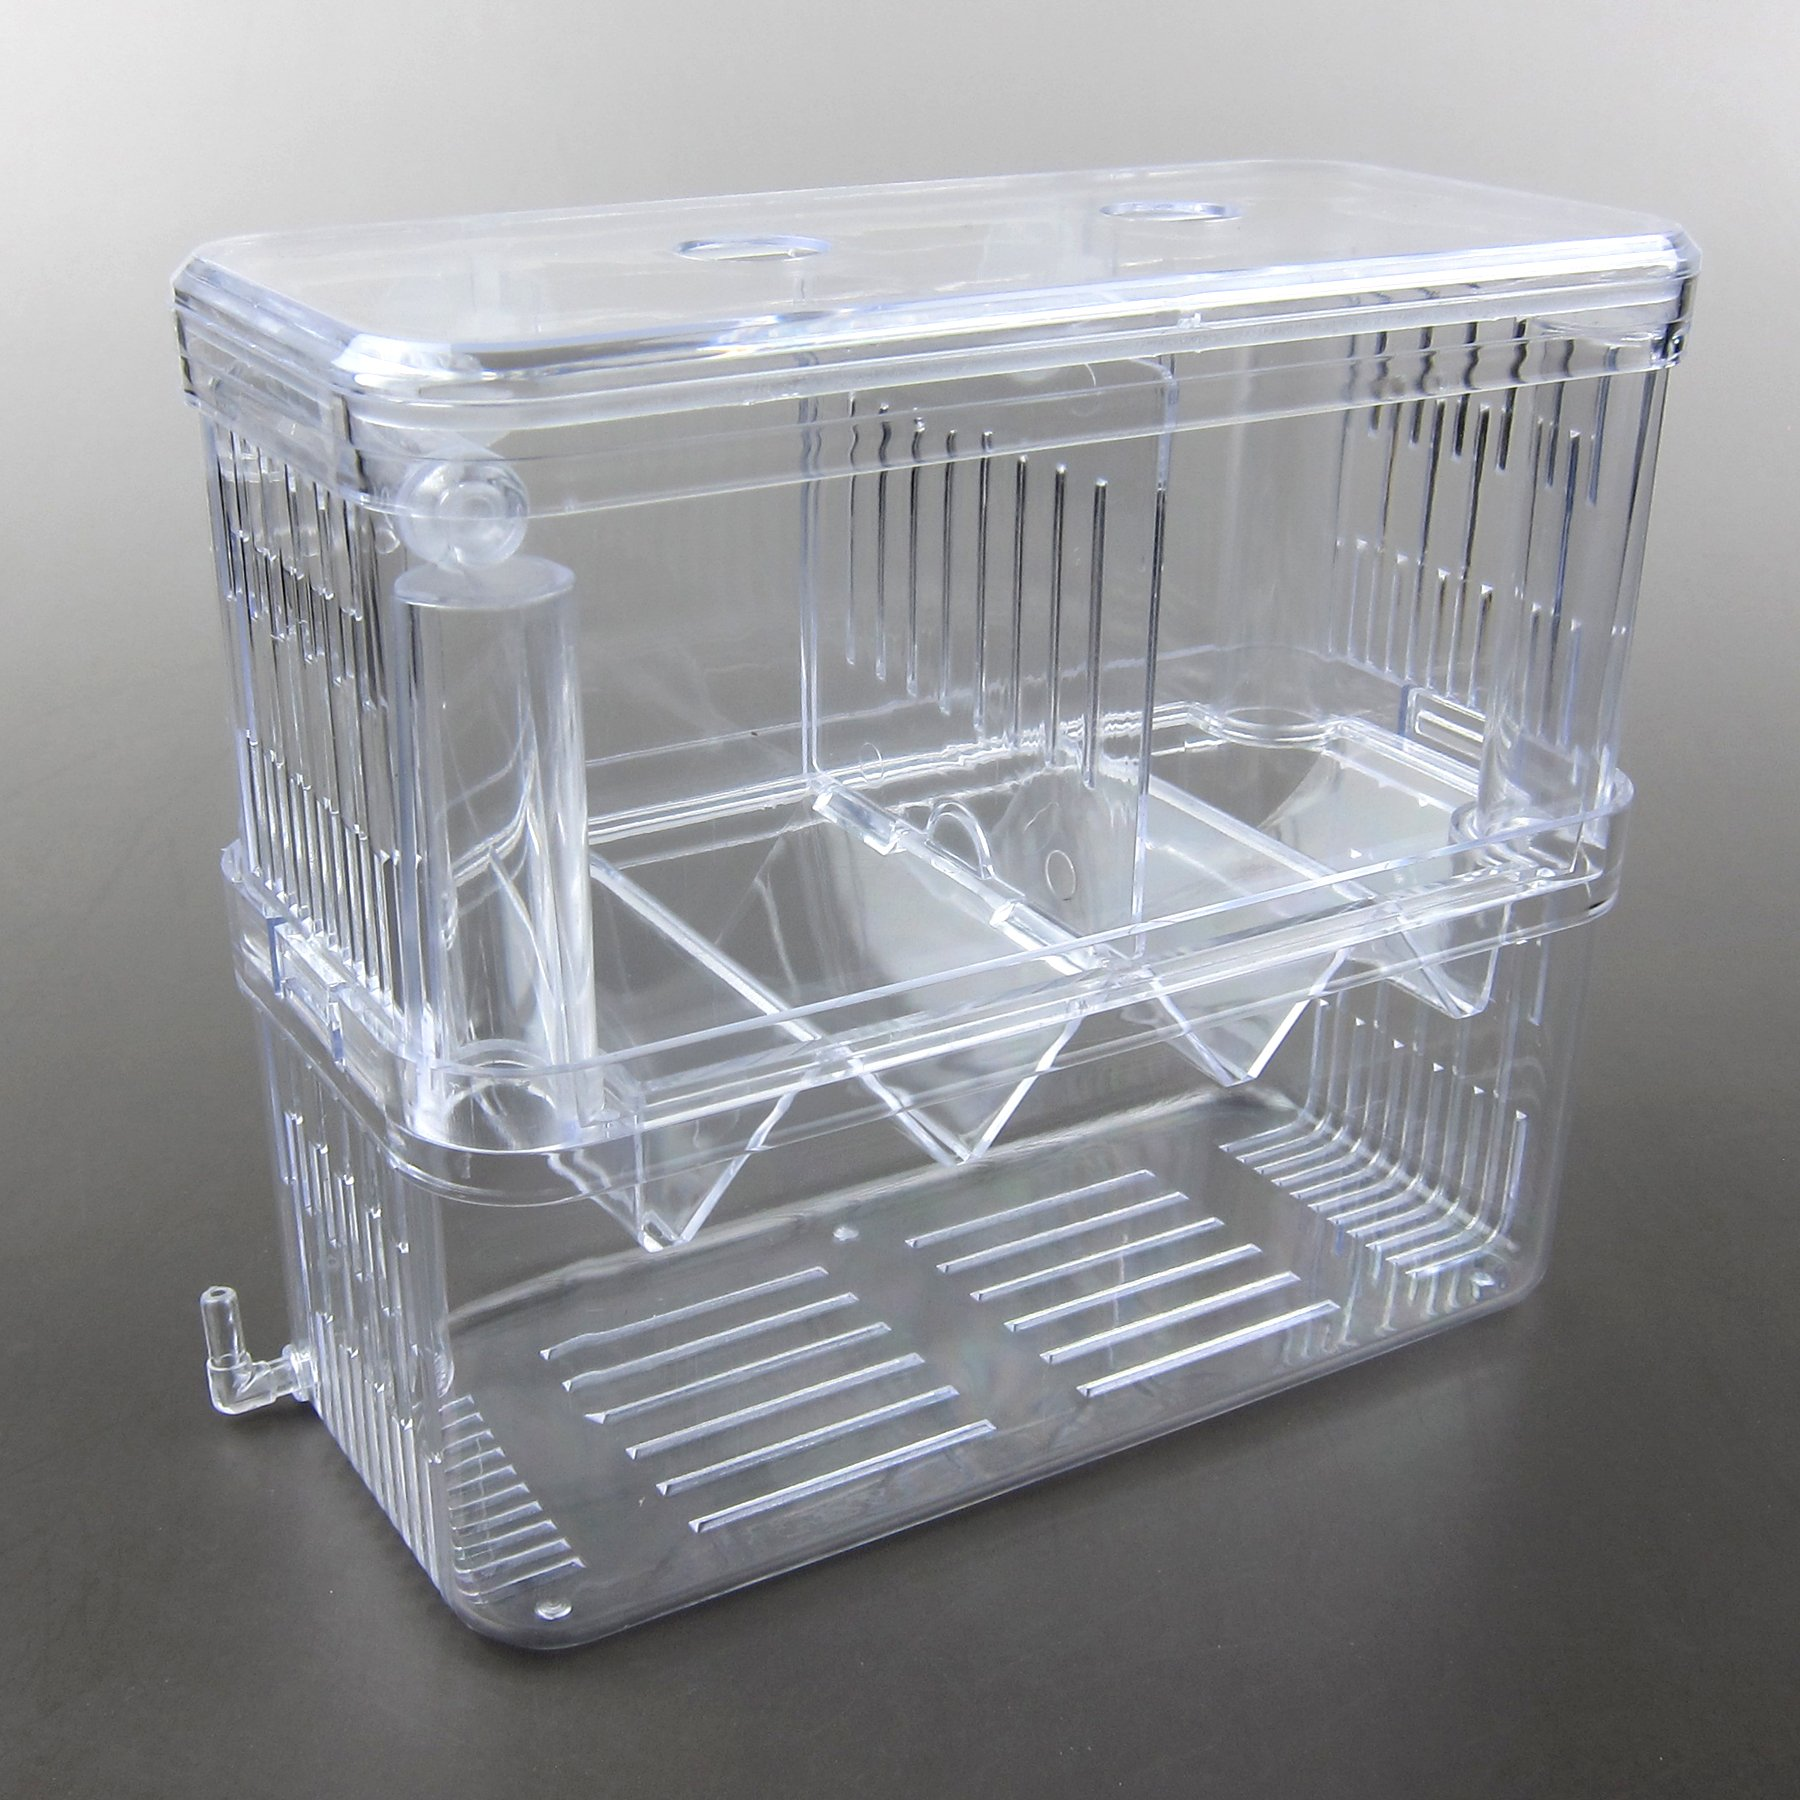 Alfie Pet by Petoga Couture - Kaia Hang-on Nursery Fish Tank with Isolation Breeding Hatchery